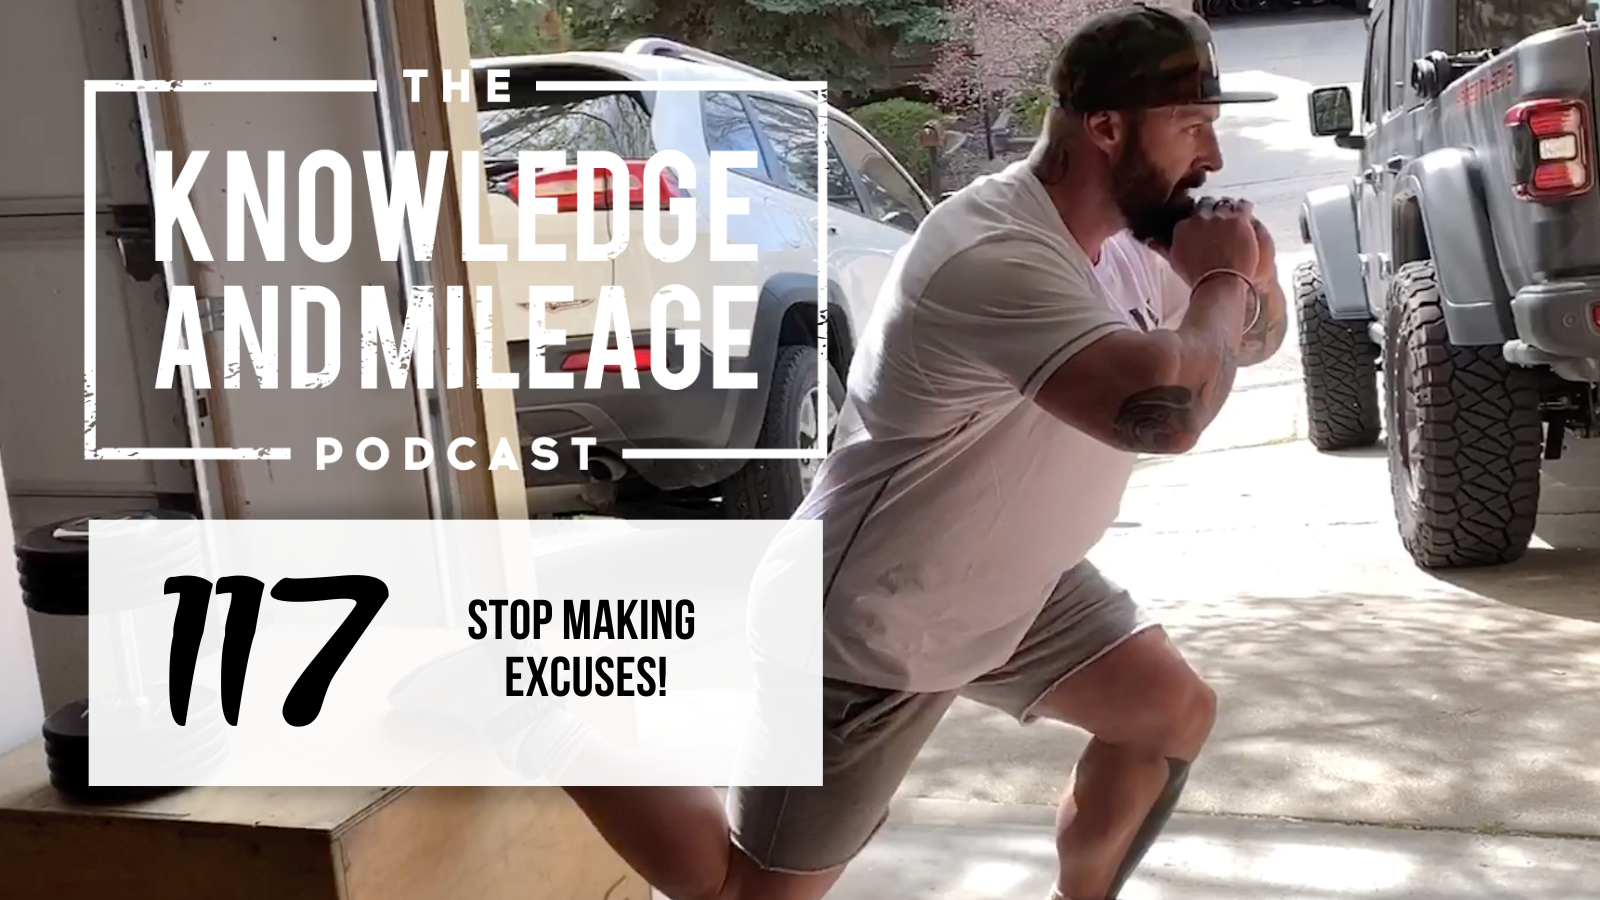 EP 117: Stop Making Excuses and Start Getting Results